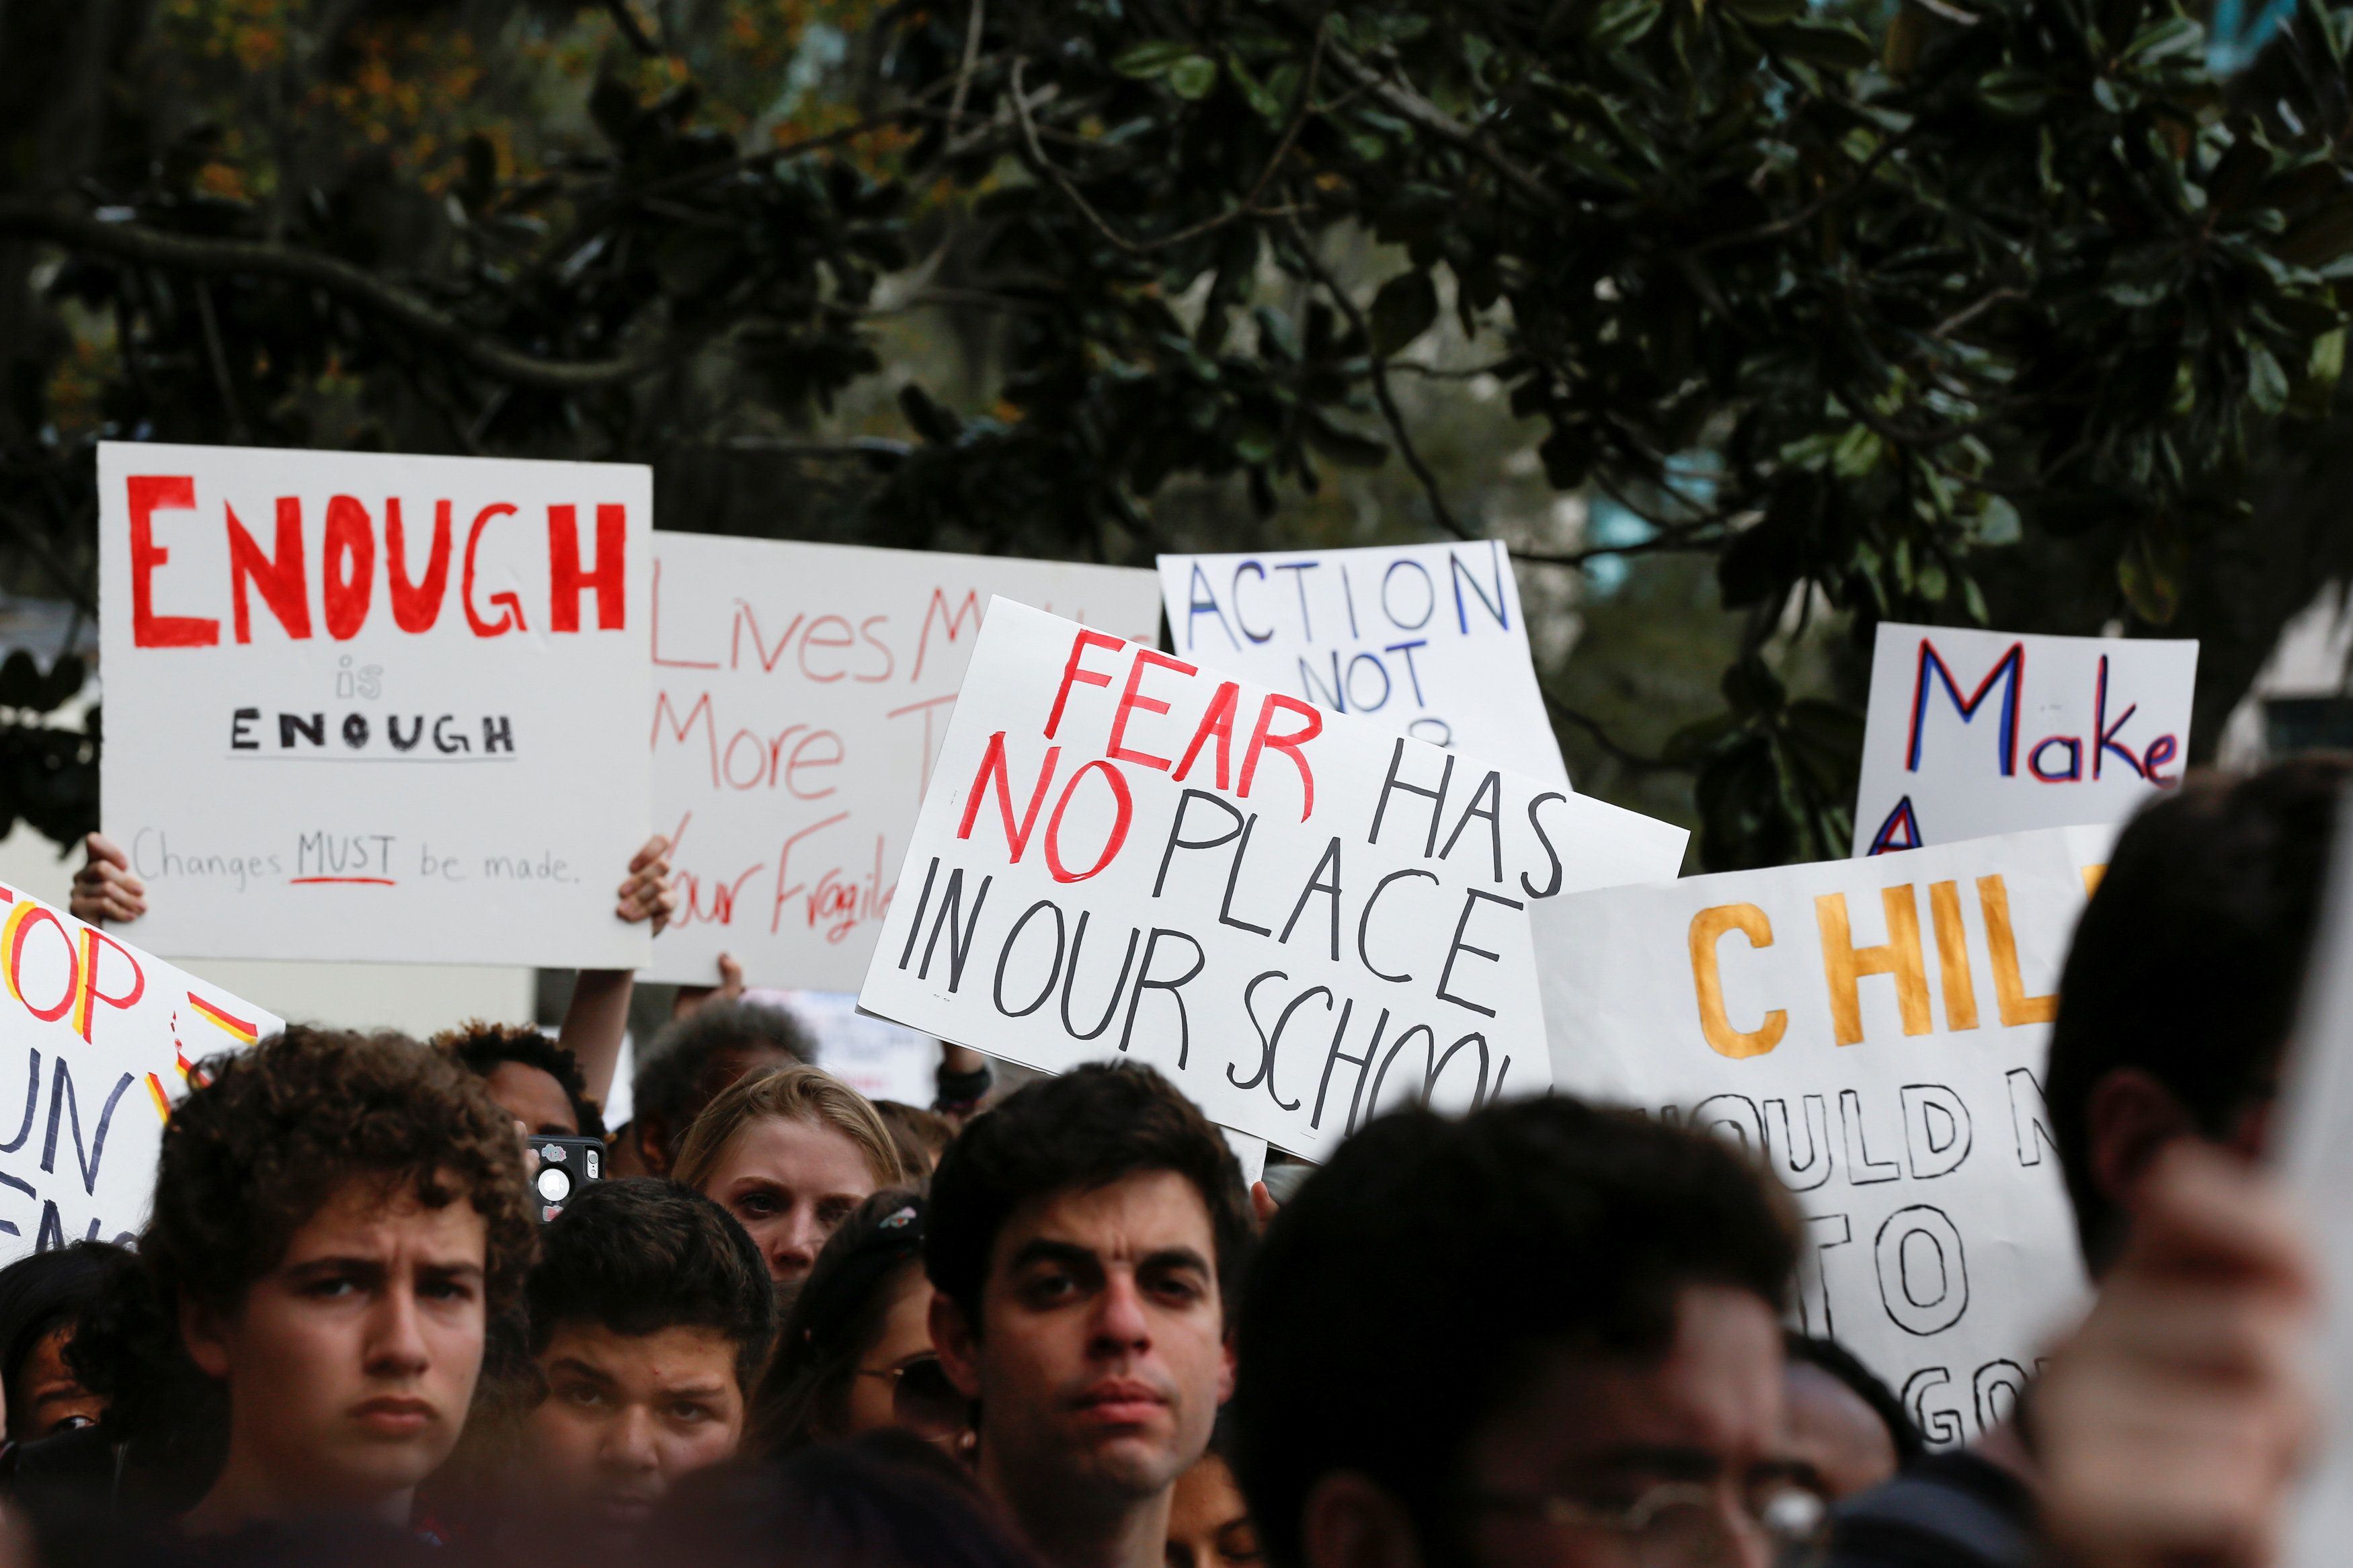 Protestors rally outside the Capitol urging Florida lawmakers to reform gun laws, in the wake of last week's mass shooting at Marjory Stoneman Douglas High School, in Tallahassee, Florida, U.S., February 21, 2018. REUTERS/Colin Hackley